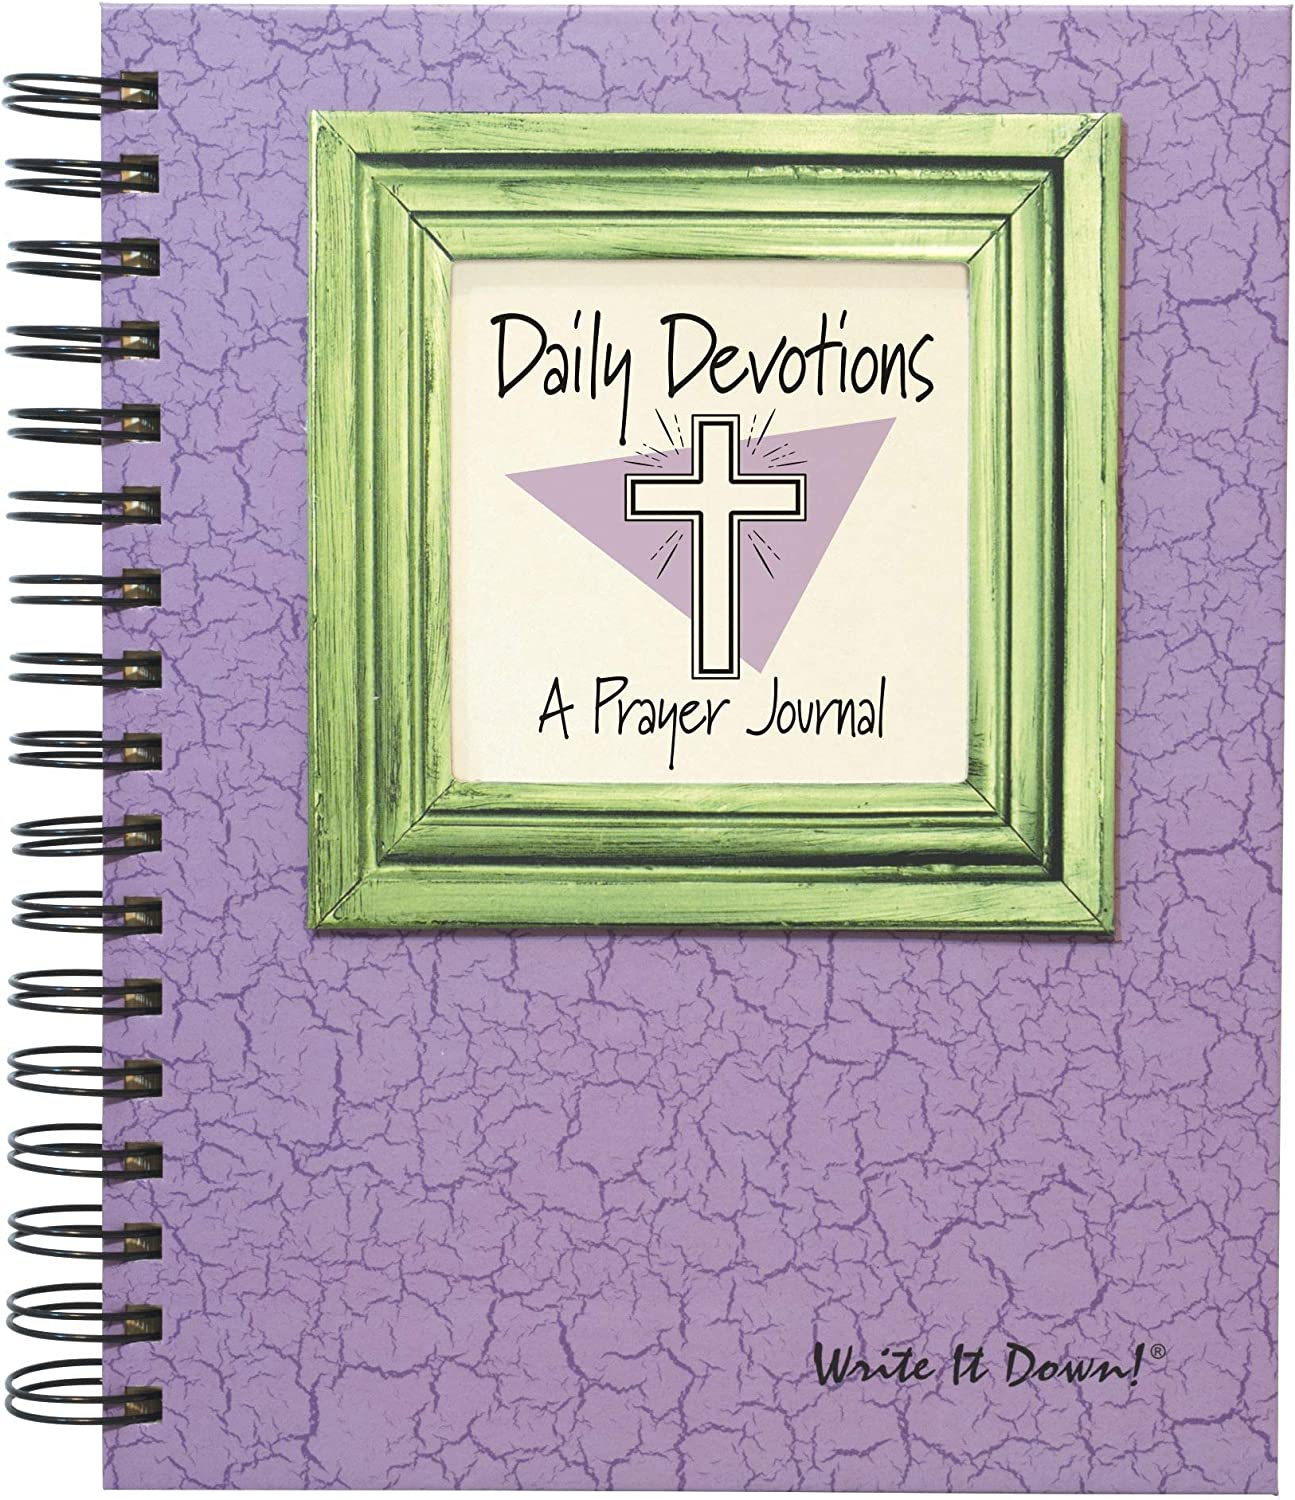 Daily Devotions, A Prayer Journal - Lilac Hard Cover (prompts on Every Page, Recycled Paper, Read More.)